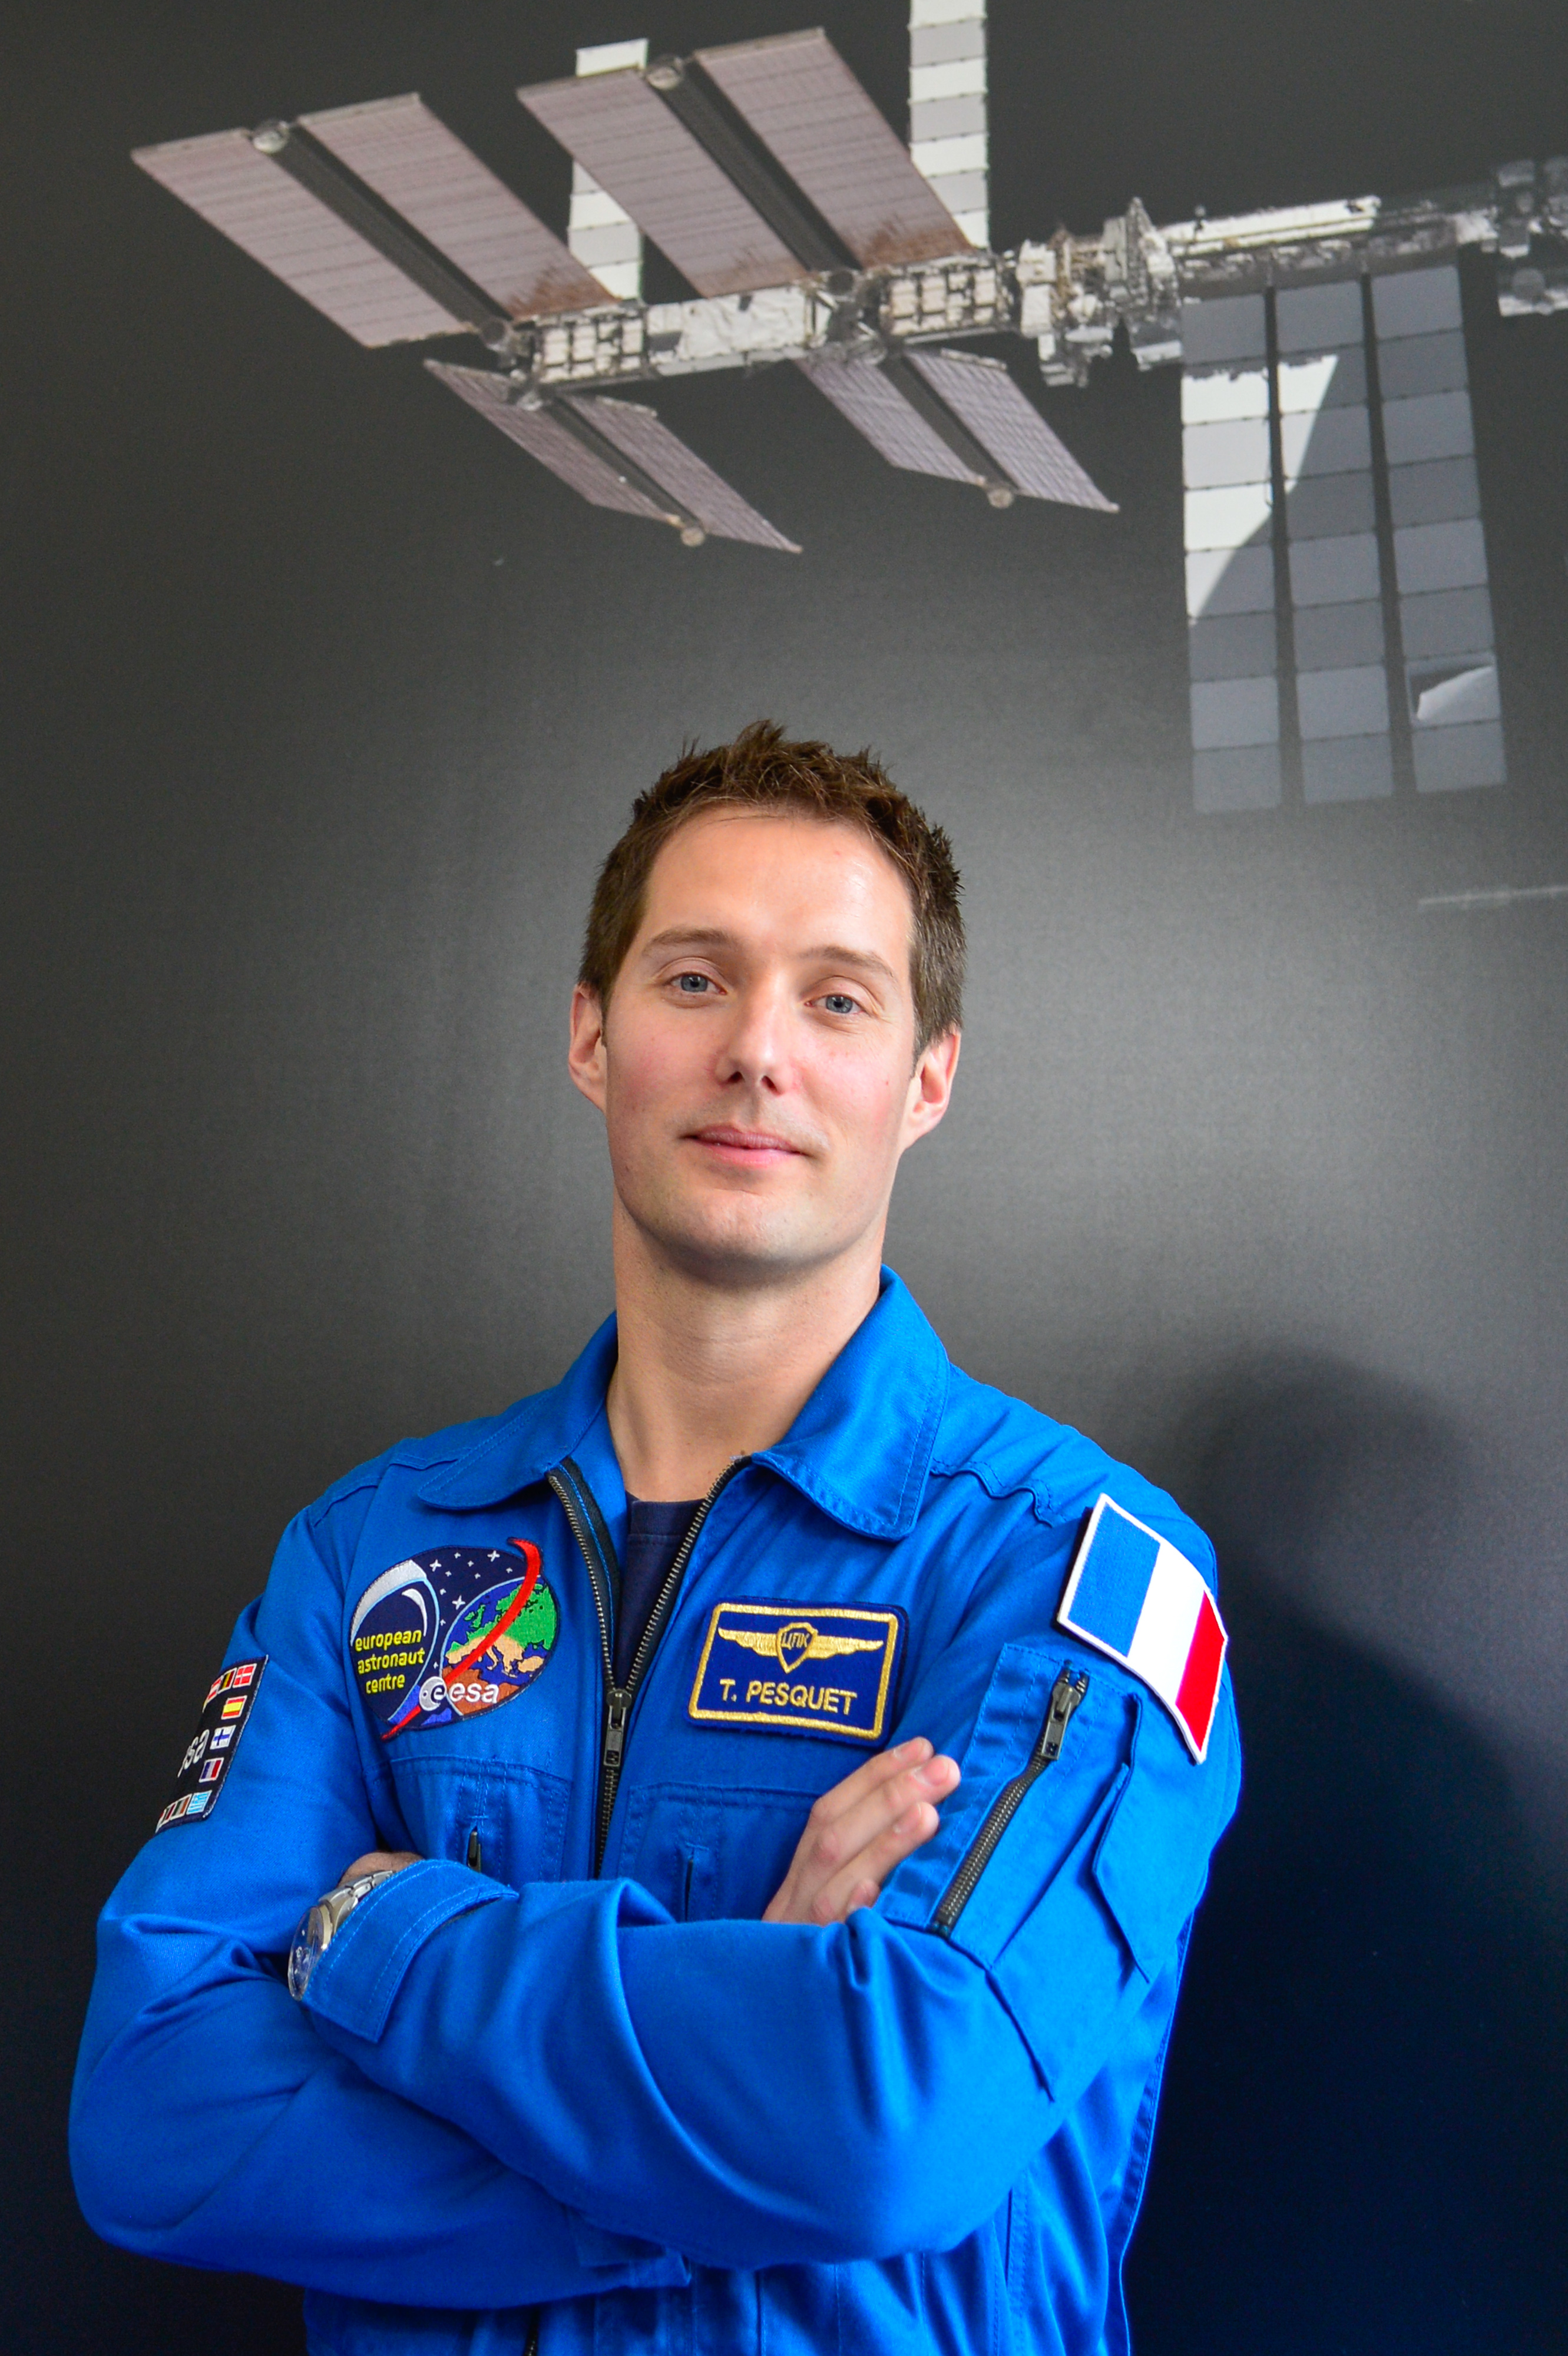 thomas_pesquet_has_been_assigned_to_a_long-duration_mission_to_the_iss